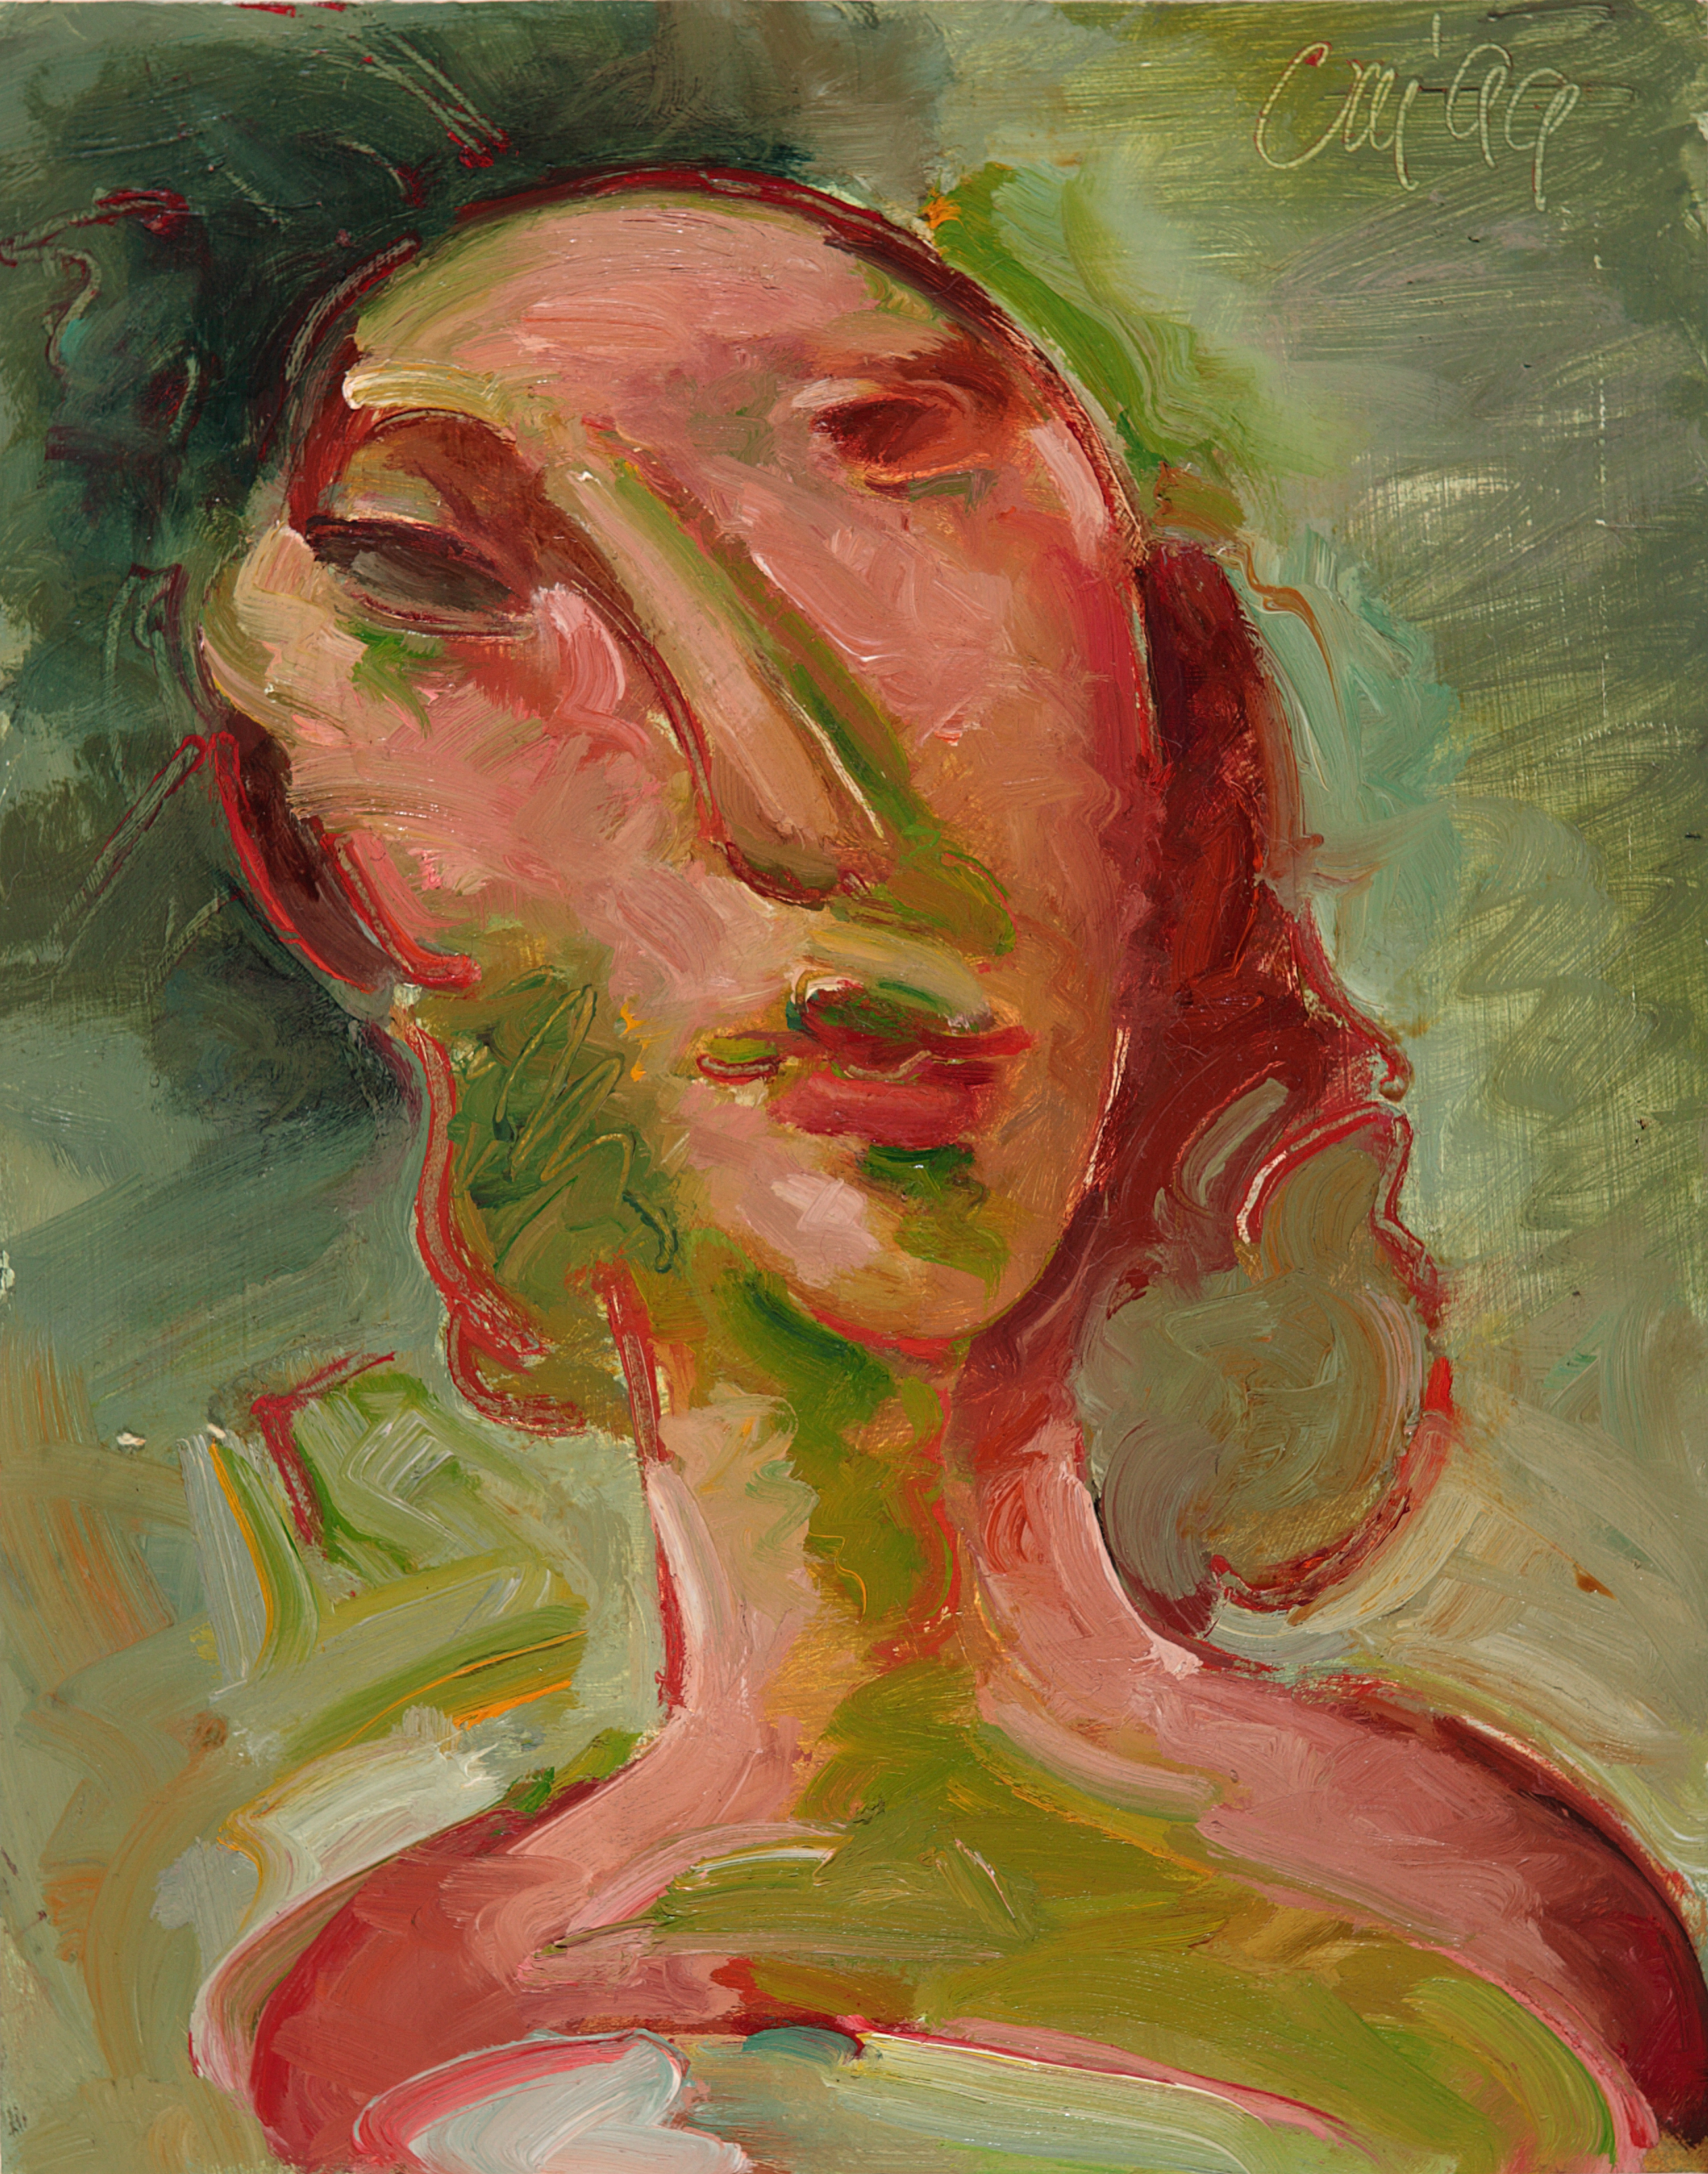 Head Study for 'Wallpaper Behind Nude Figure'